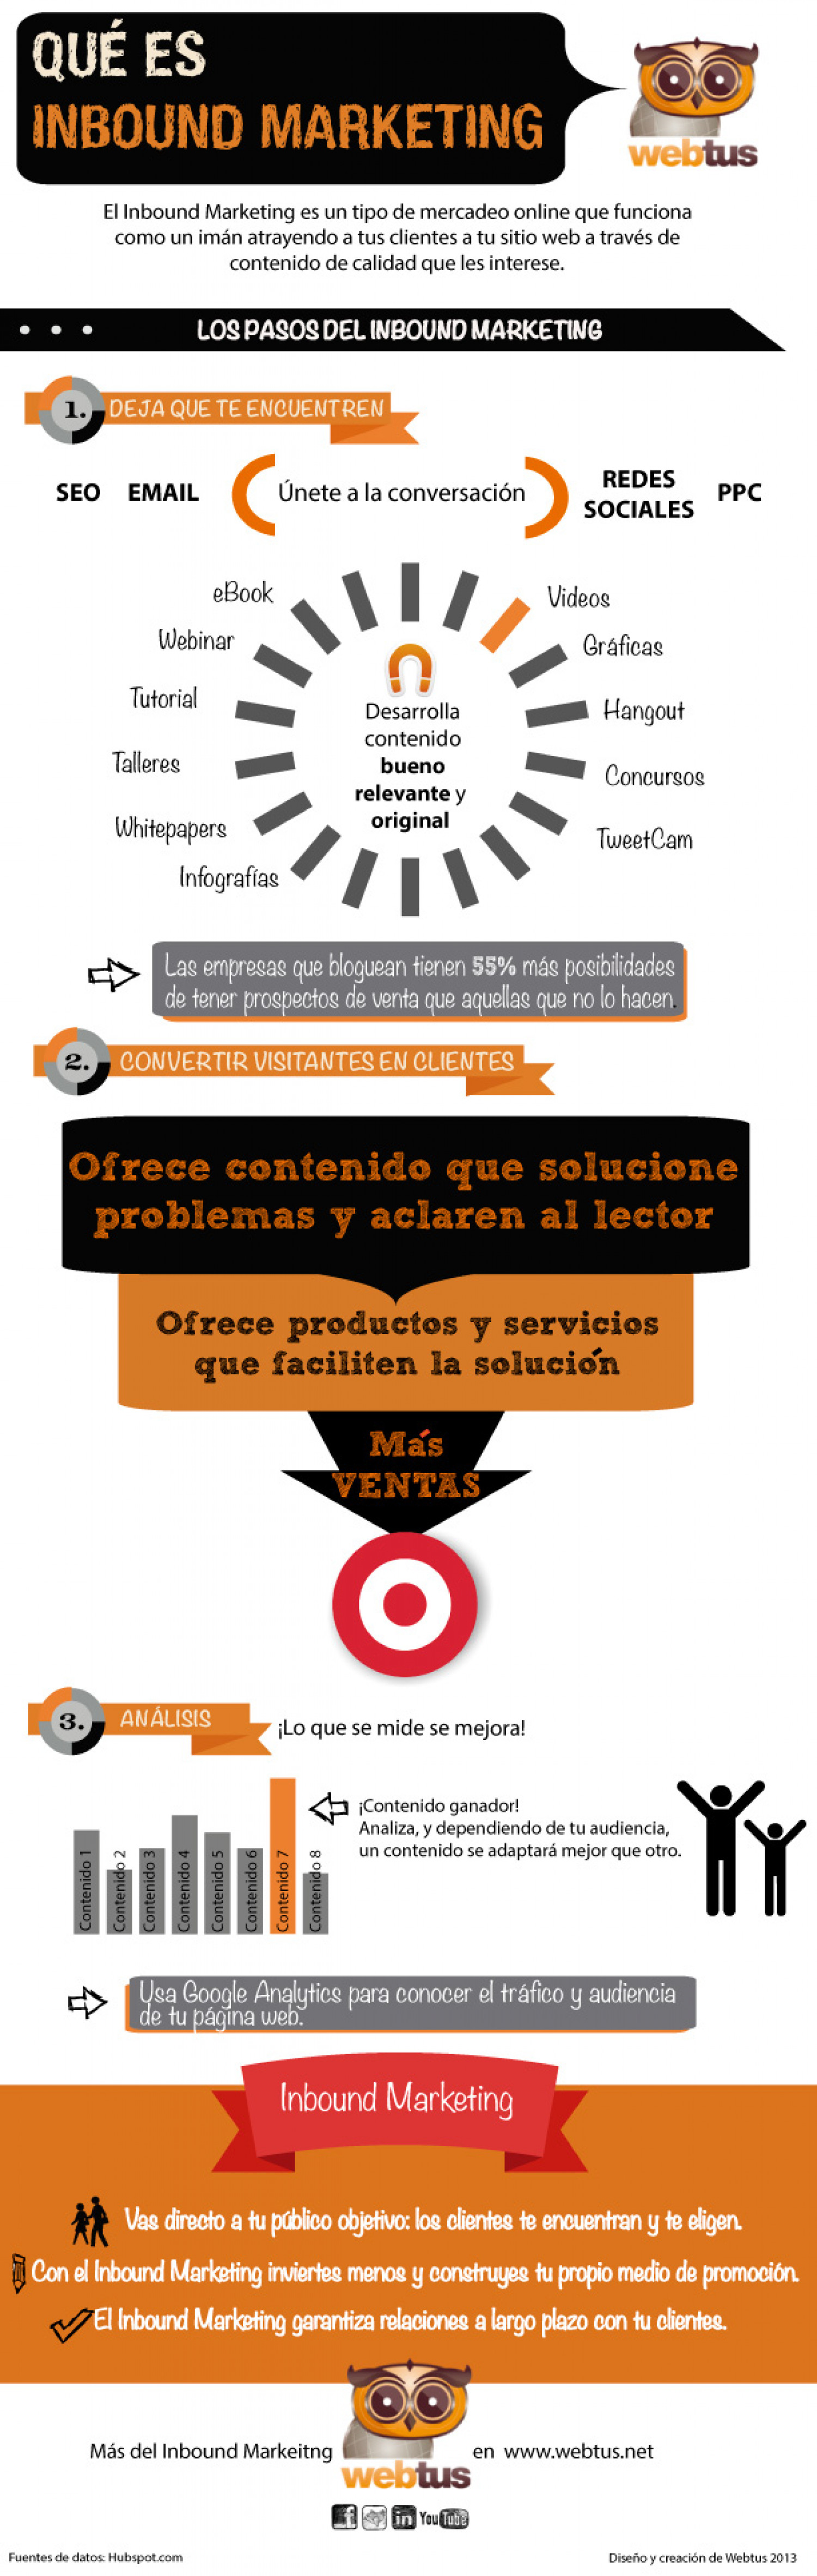 Qué es Inbound Marketing Infographic